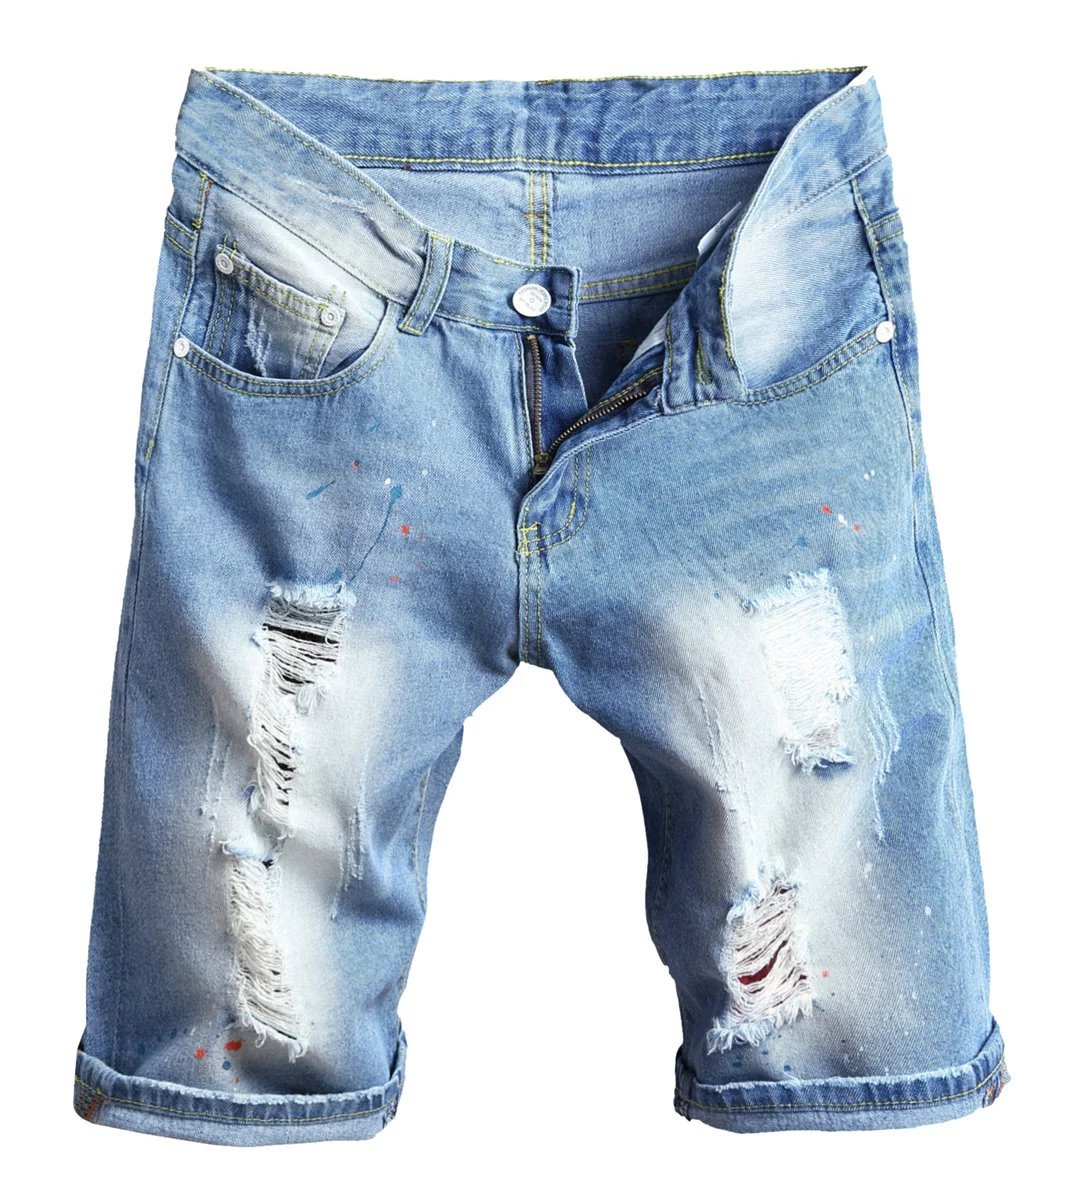 Betusline Mens Casual Summer Painted Ripped Holes Denim Jeans Shorts Blue,36